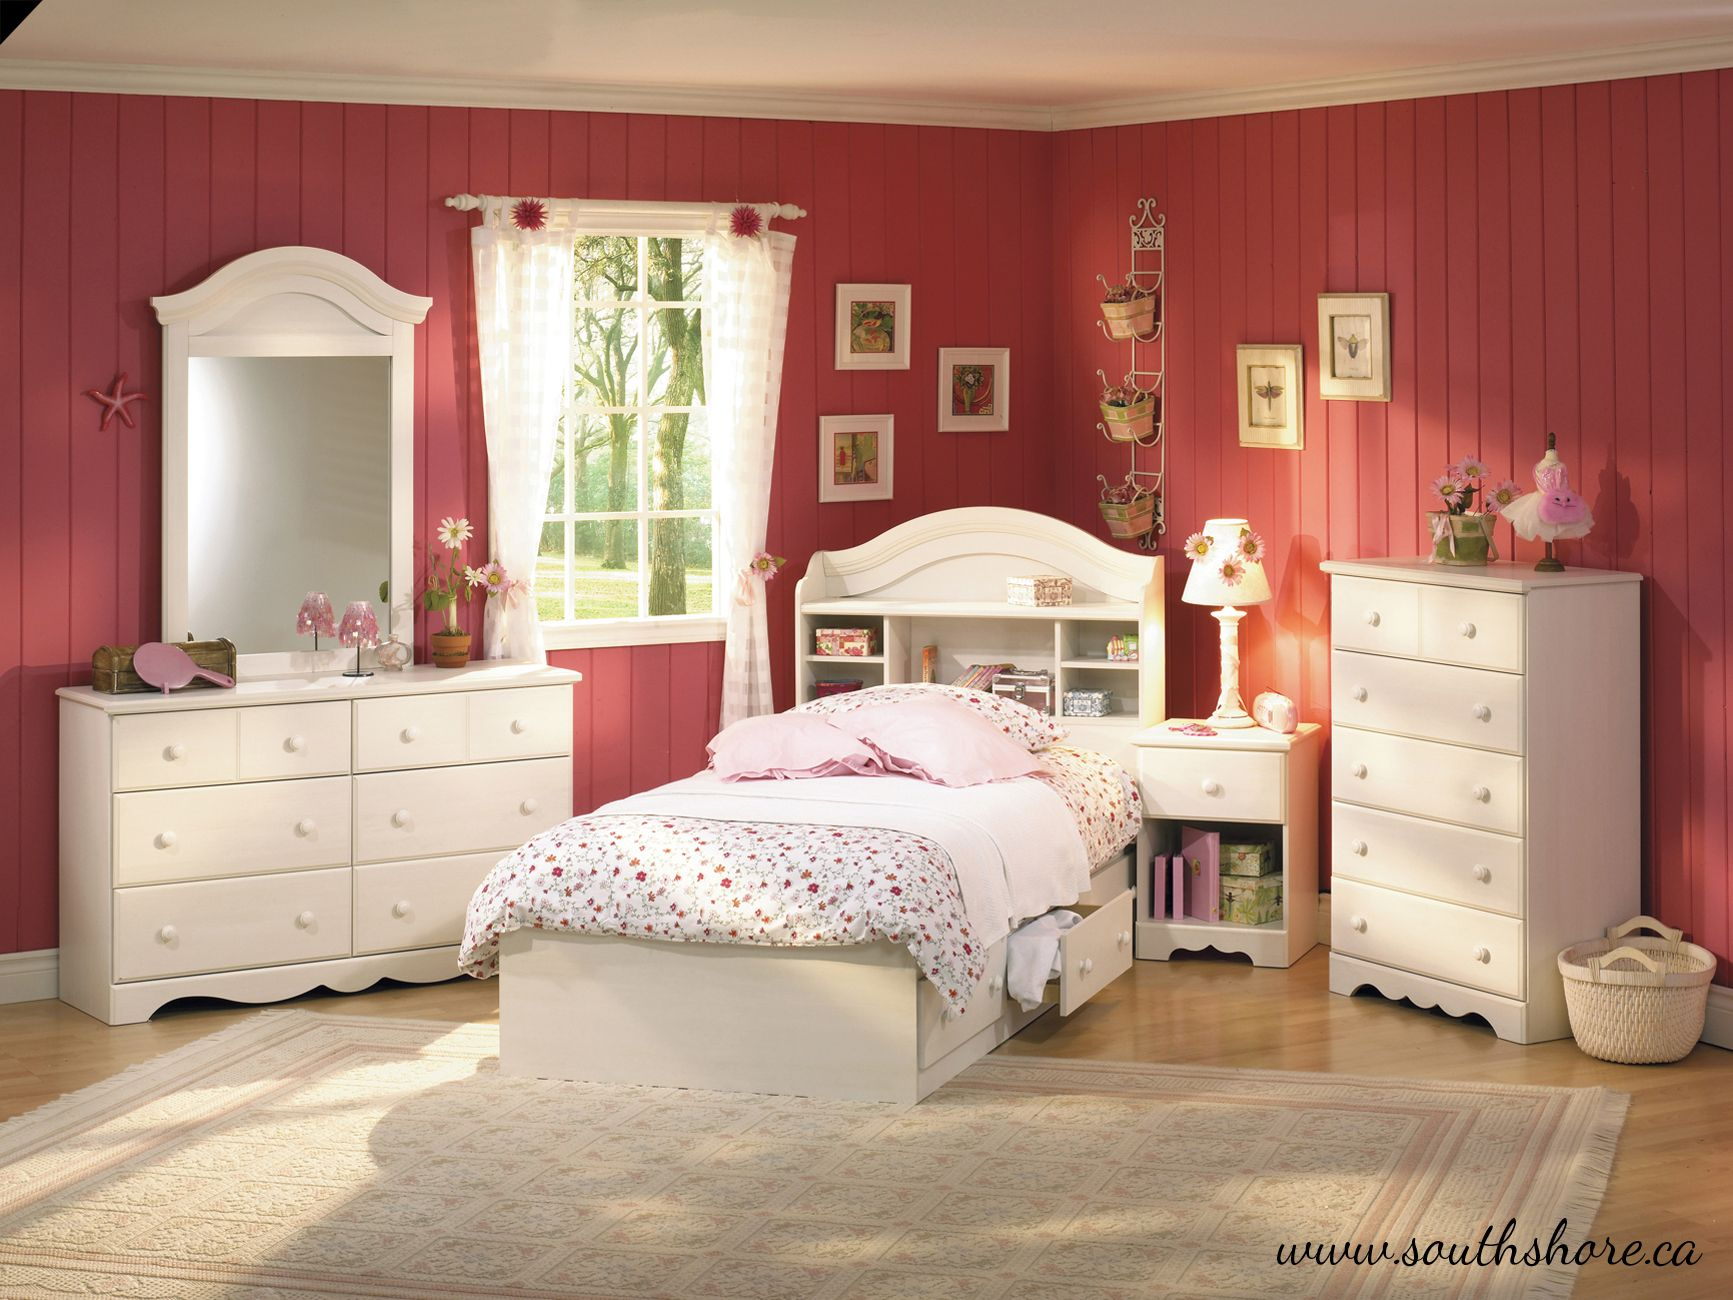 style decorating teen e girls bedrooms tween girl of teenage image for bedroom within theydesign furniture simple a ideas